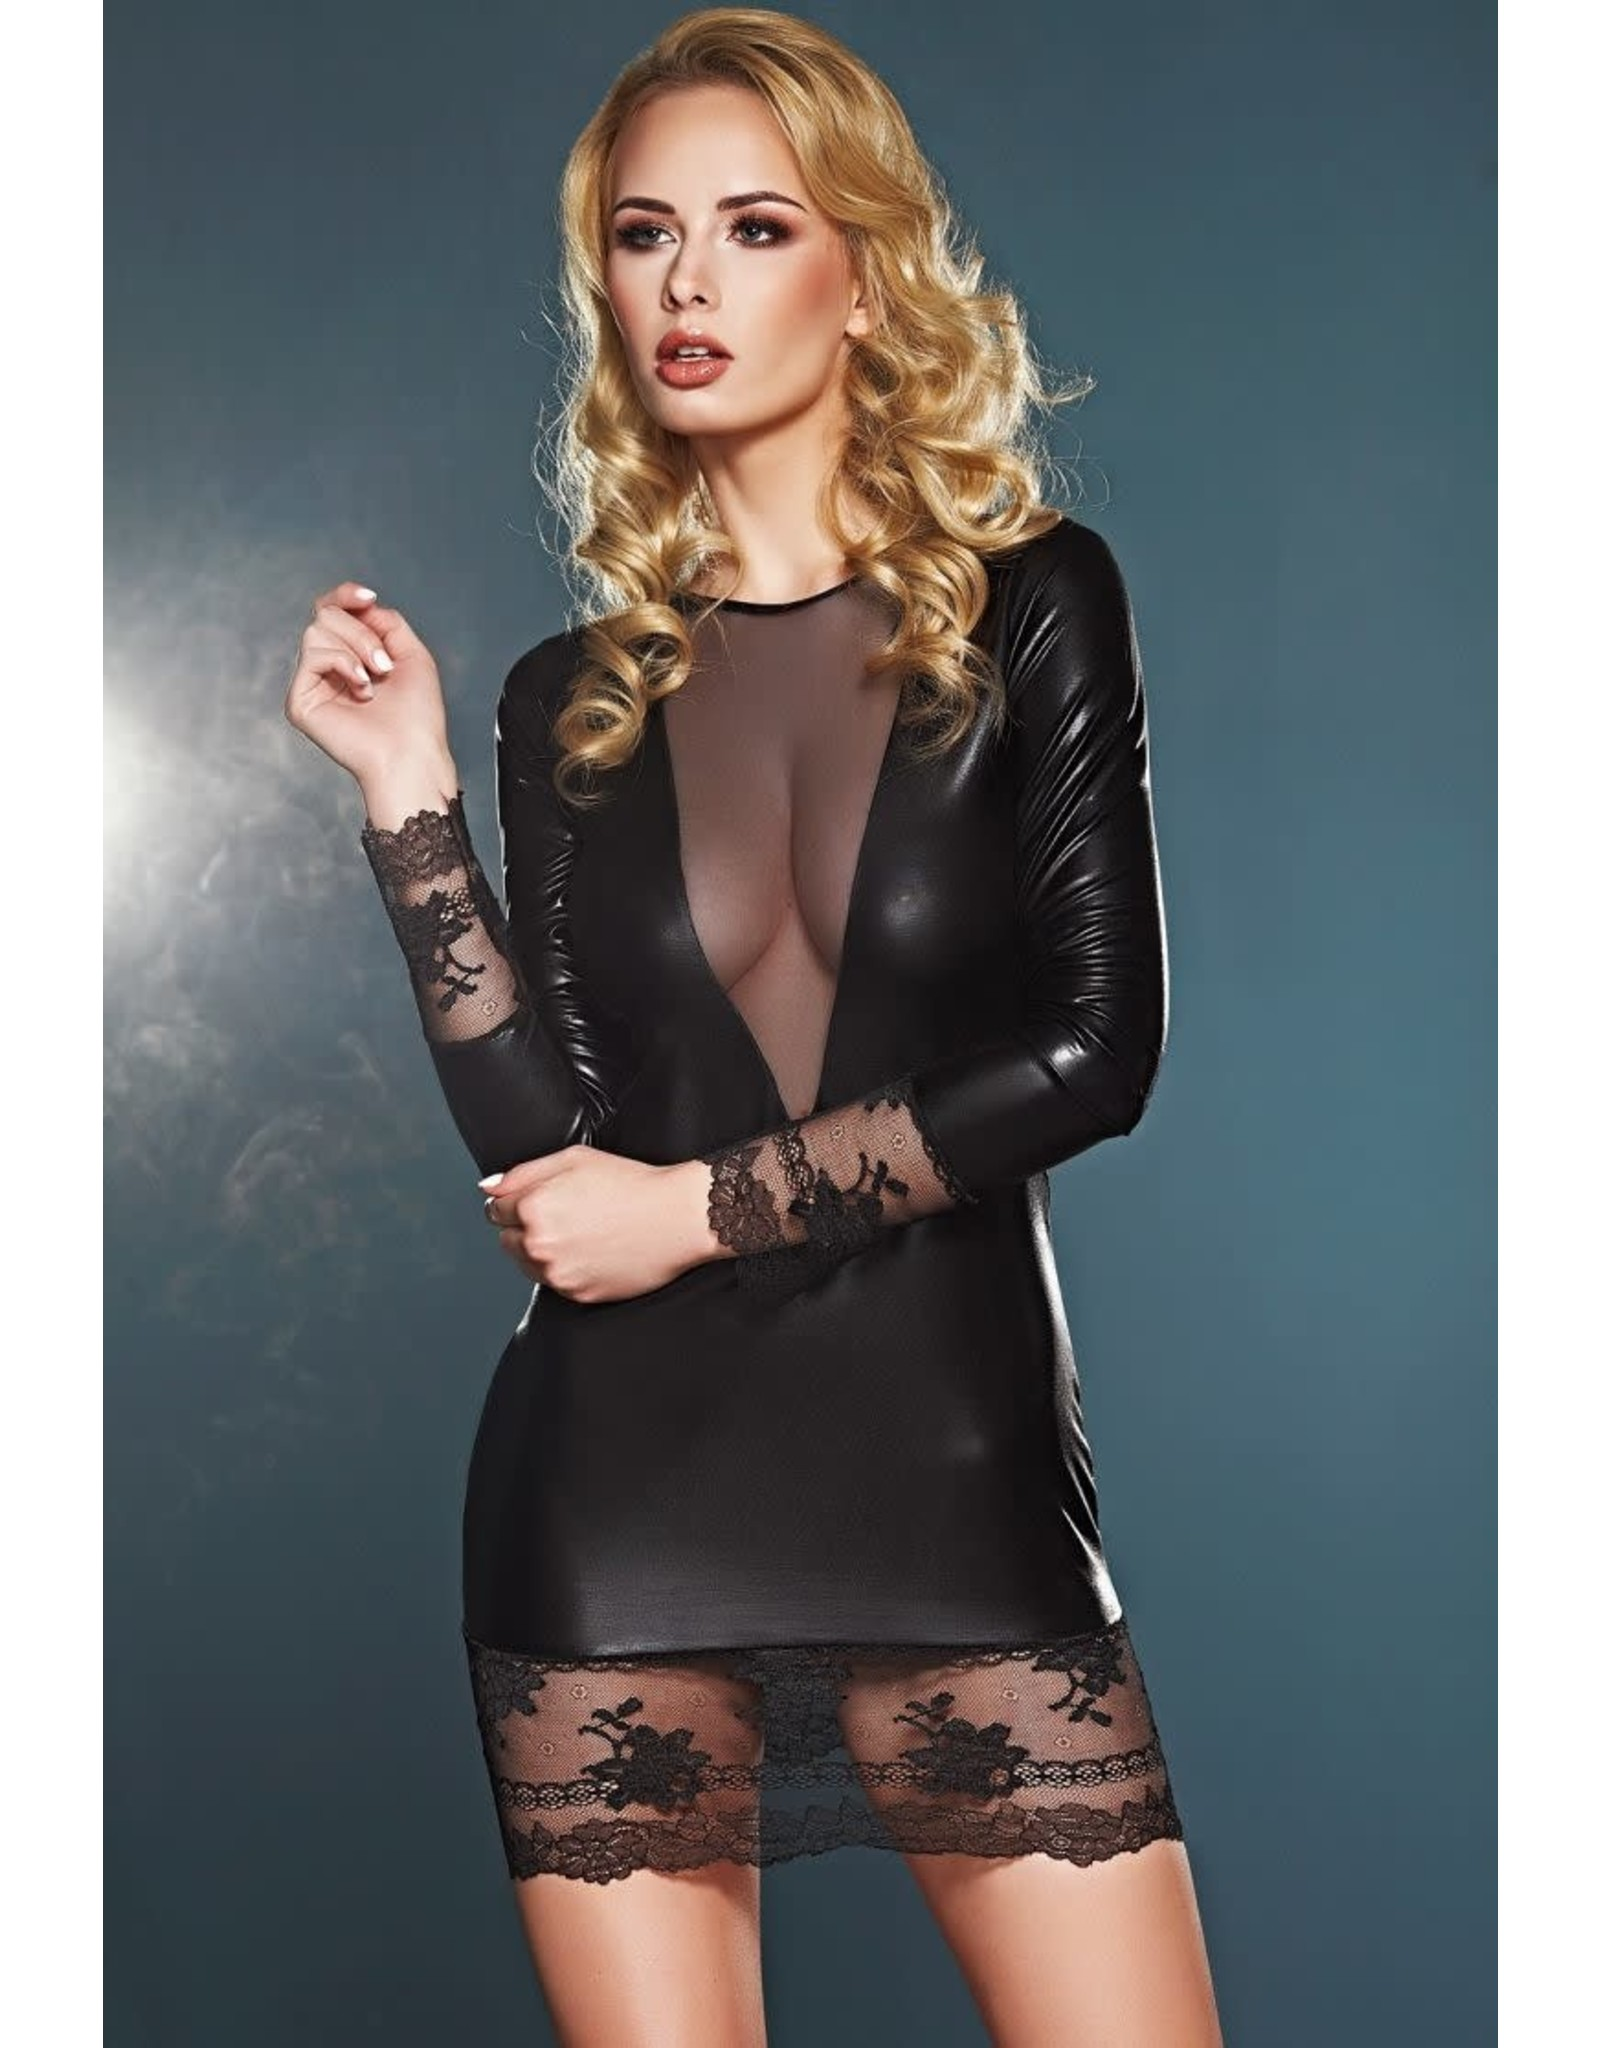 7 HEAVEN ELEGANT LONG-SLEEVE WET-LOOK DRESS WITH LACE AND TULLE DETAILS 3XL